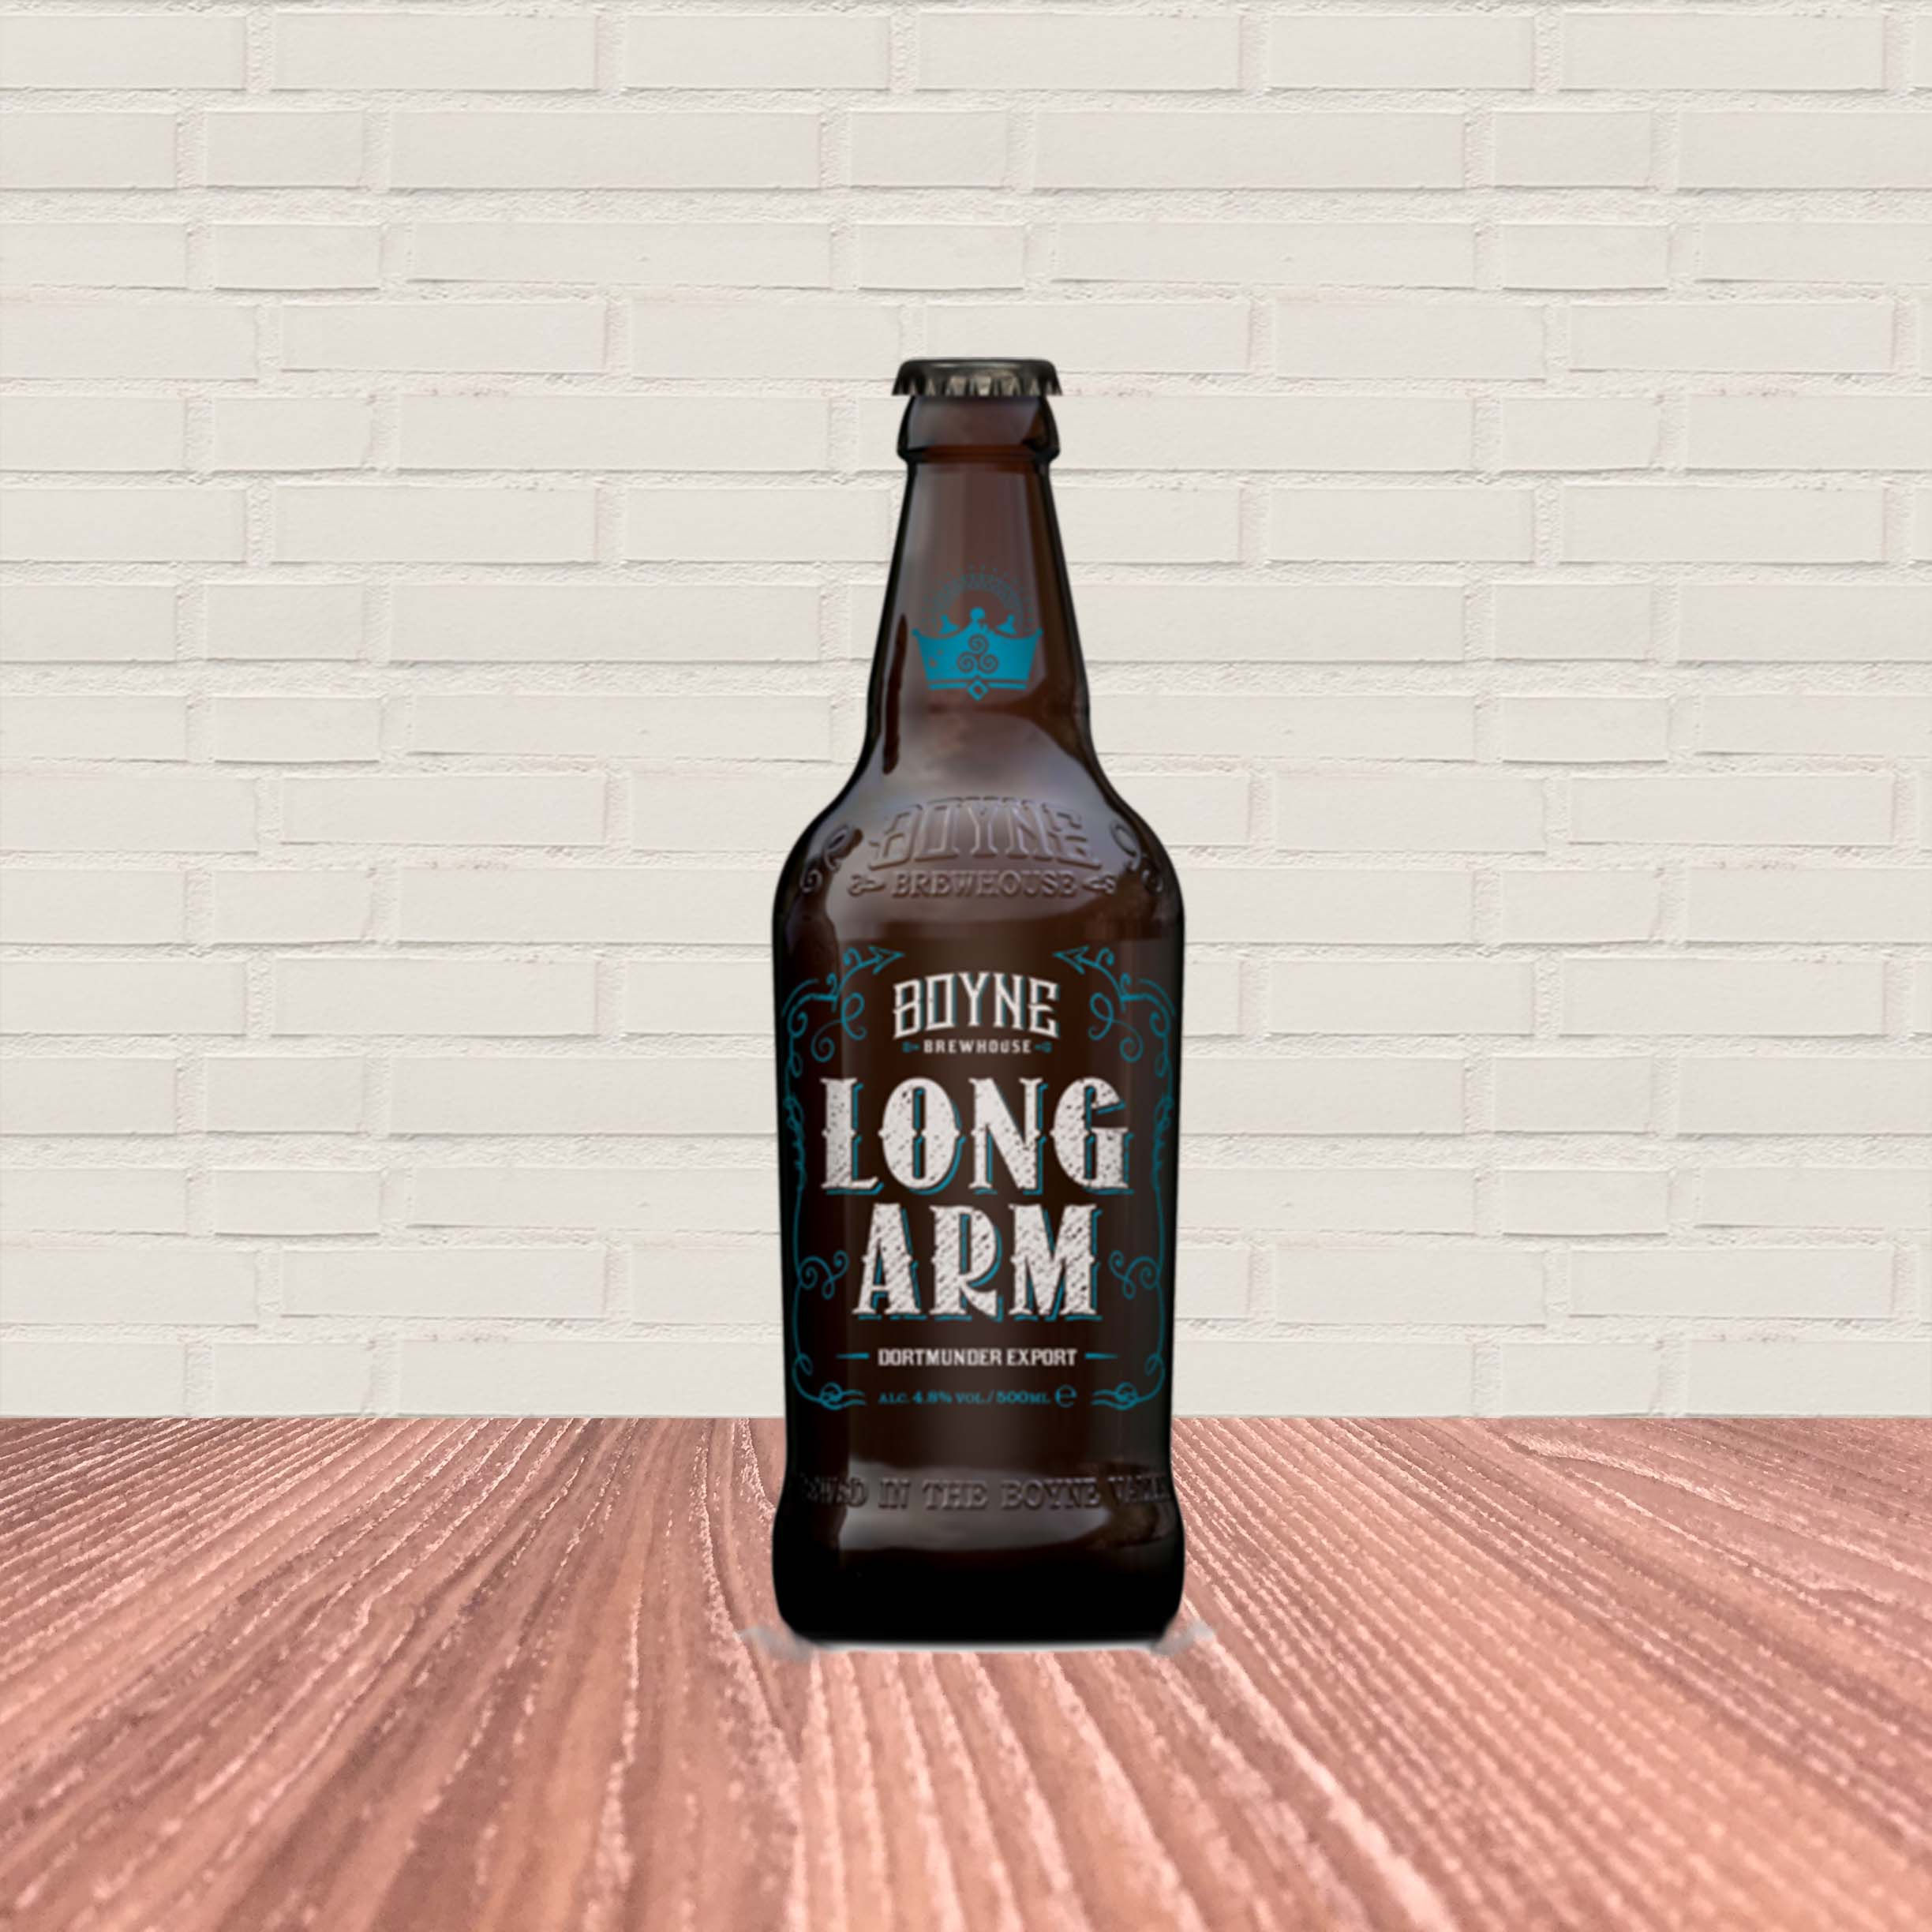 Long Arm by Boyne Brewhouse